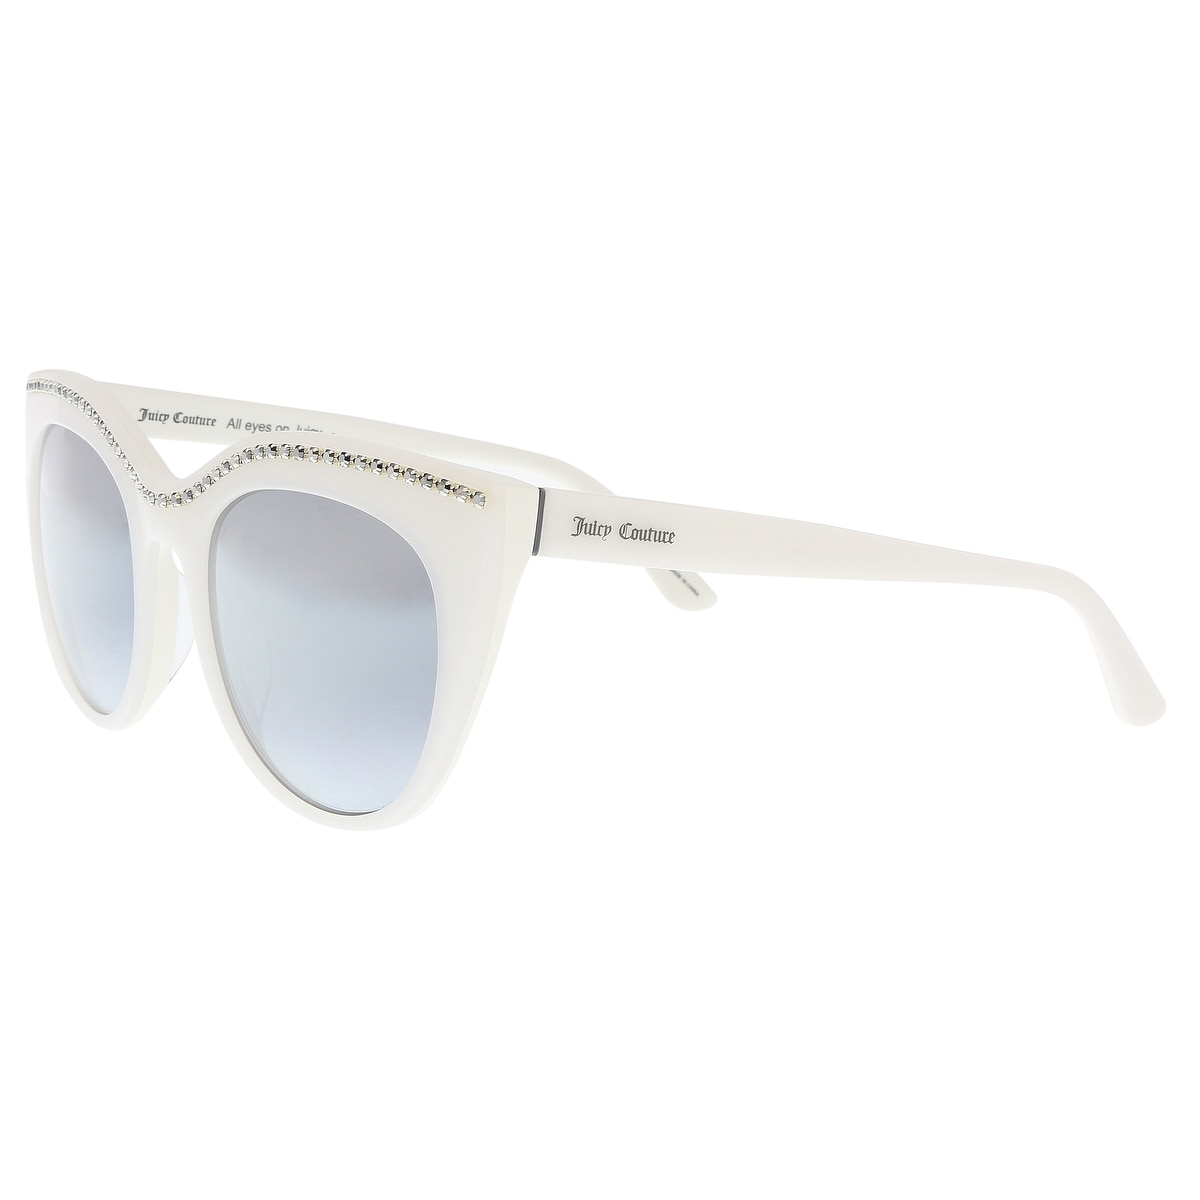 655c992e1d Juicy Couture JU595 S 0VK6 GO White Cat Eye Sunglasses - 51-21-140 - Free  Shipping Today - Overstock - 26932227